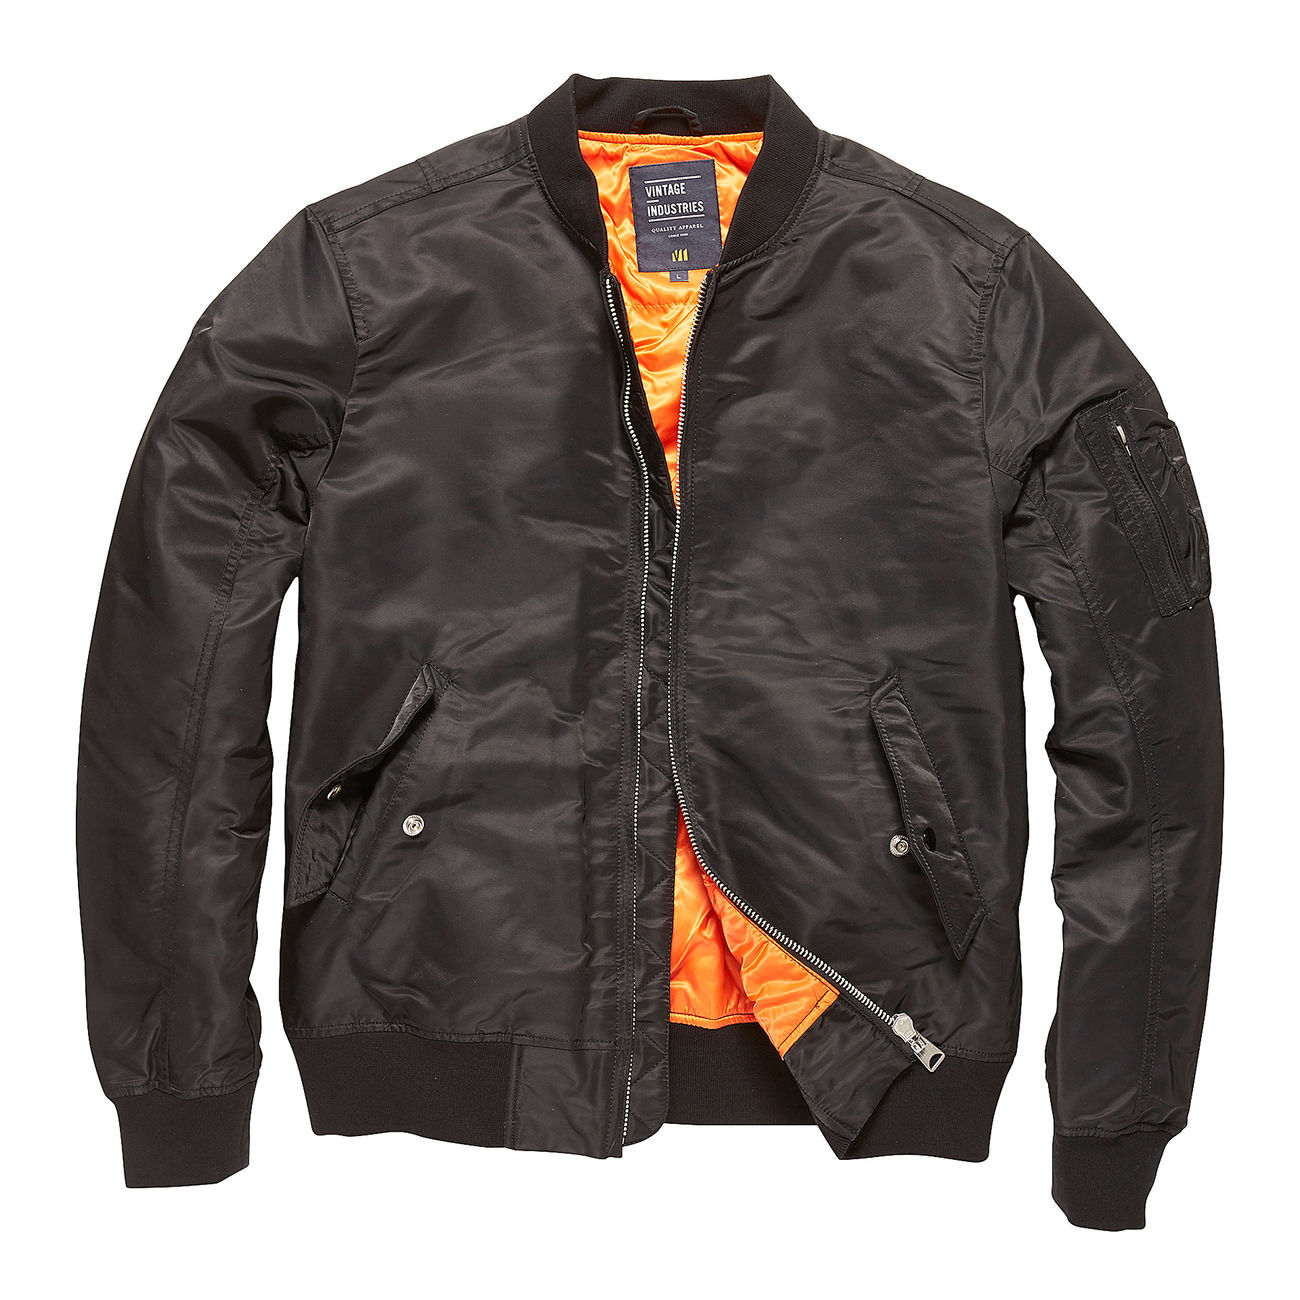 on sale 981ae f0af0 Vintage Industries Bomberjacke Welder schwarz